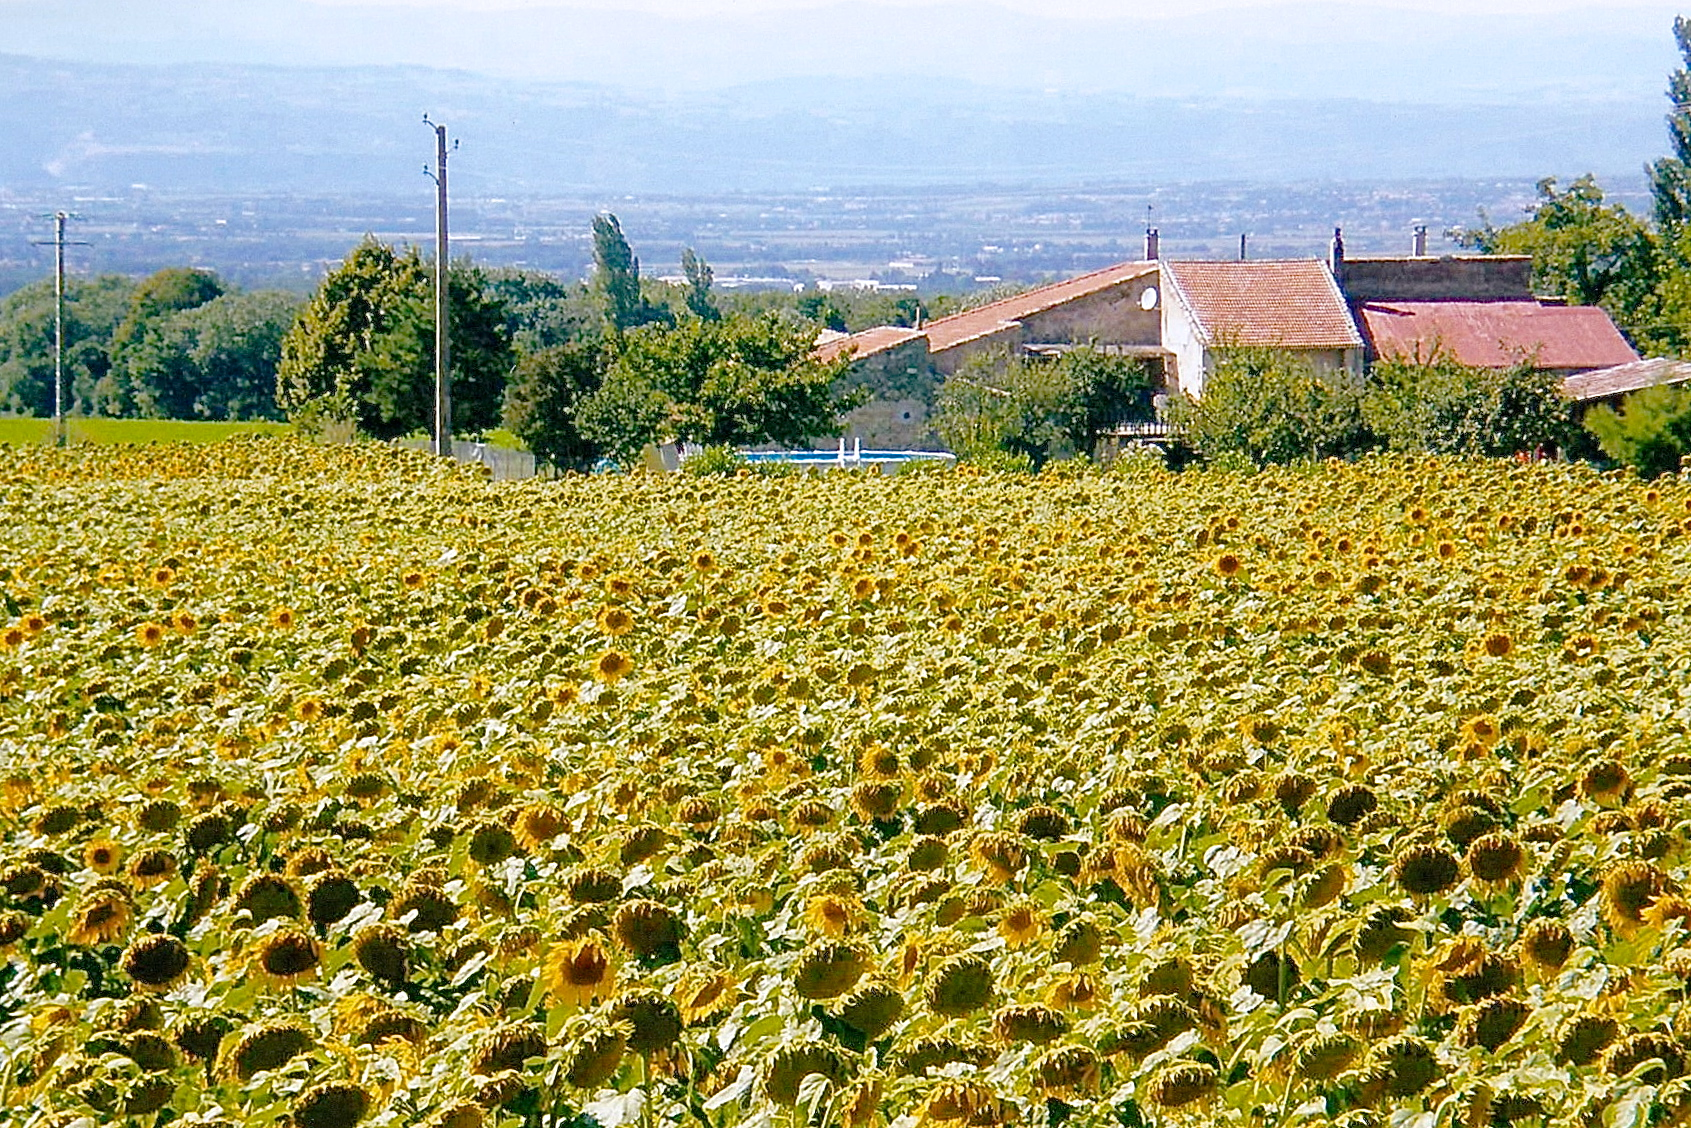 Sunflowers and residence in southern France